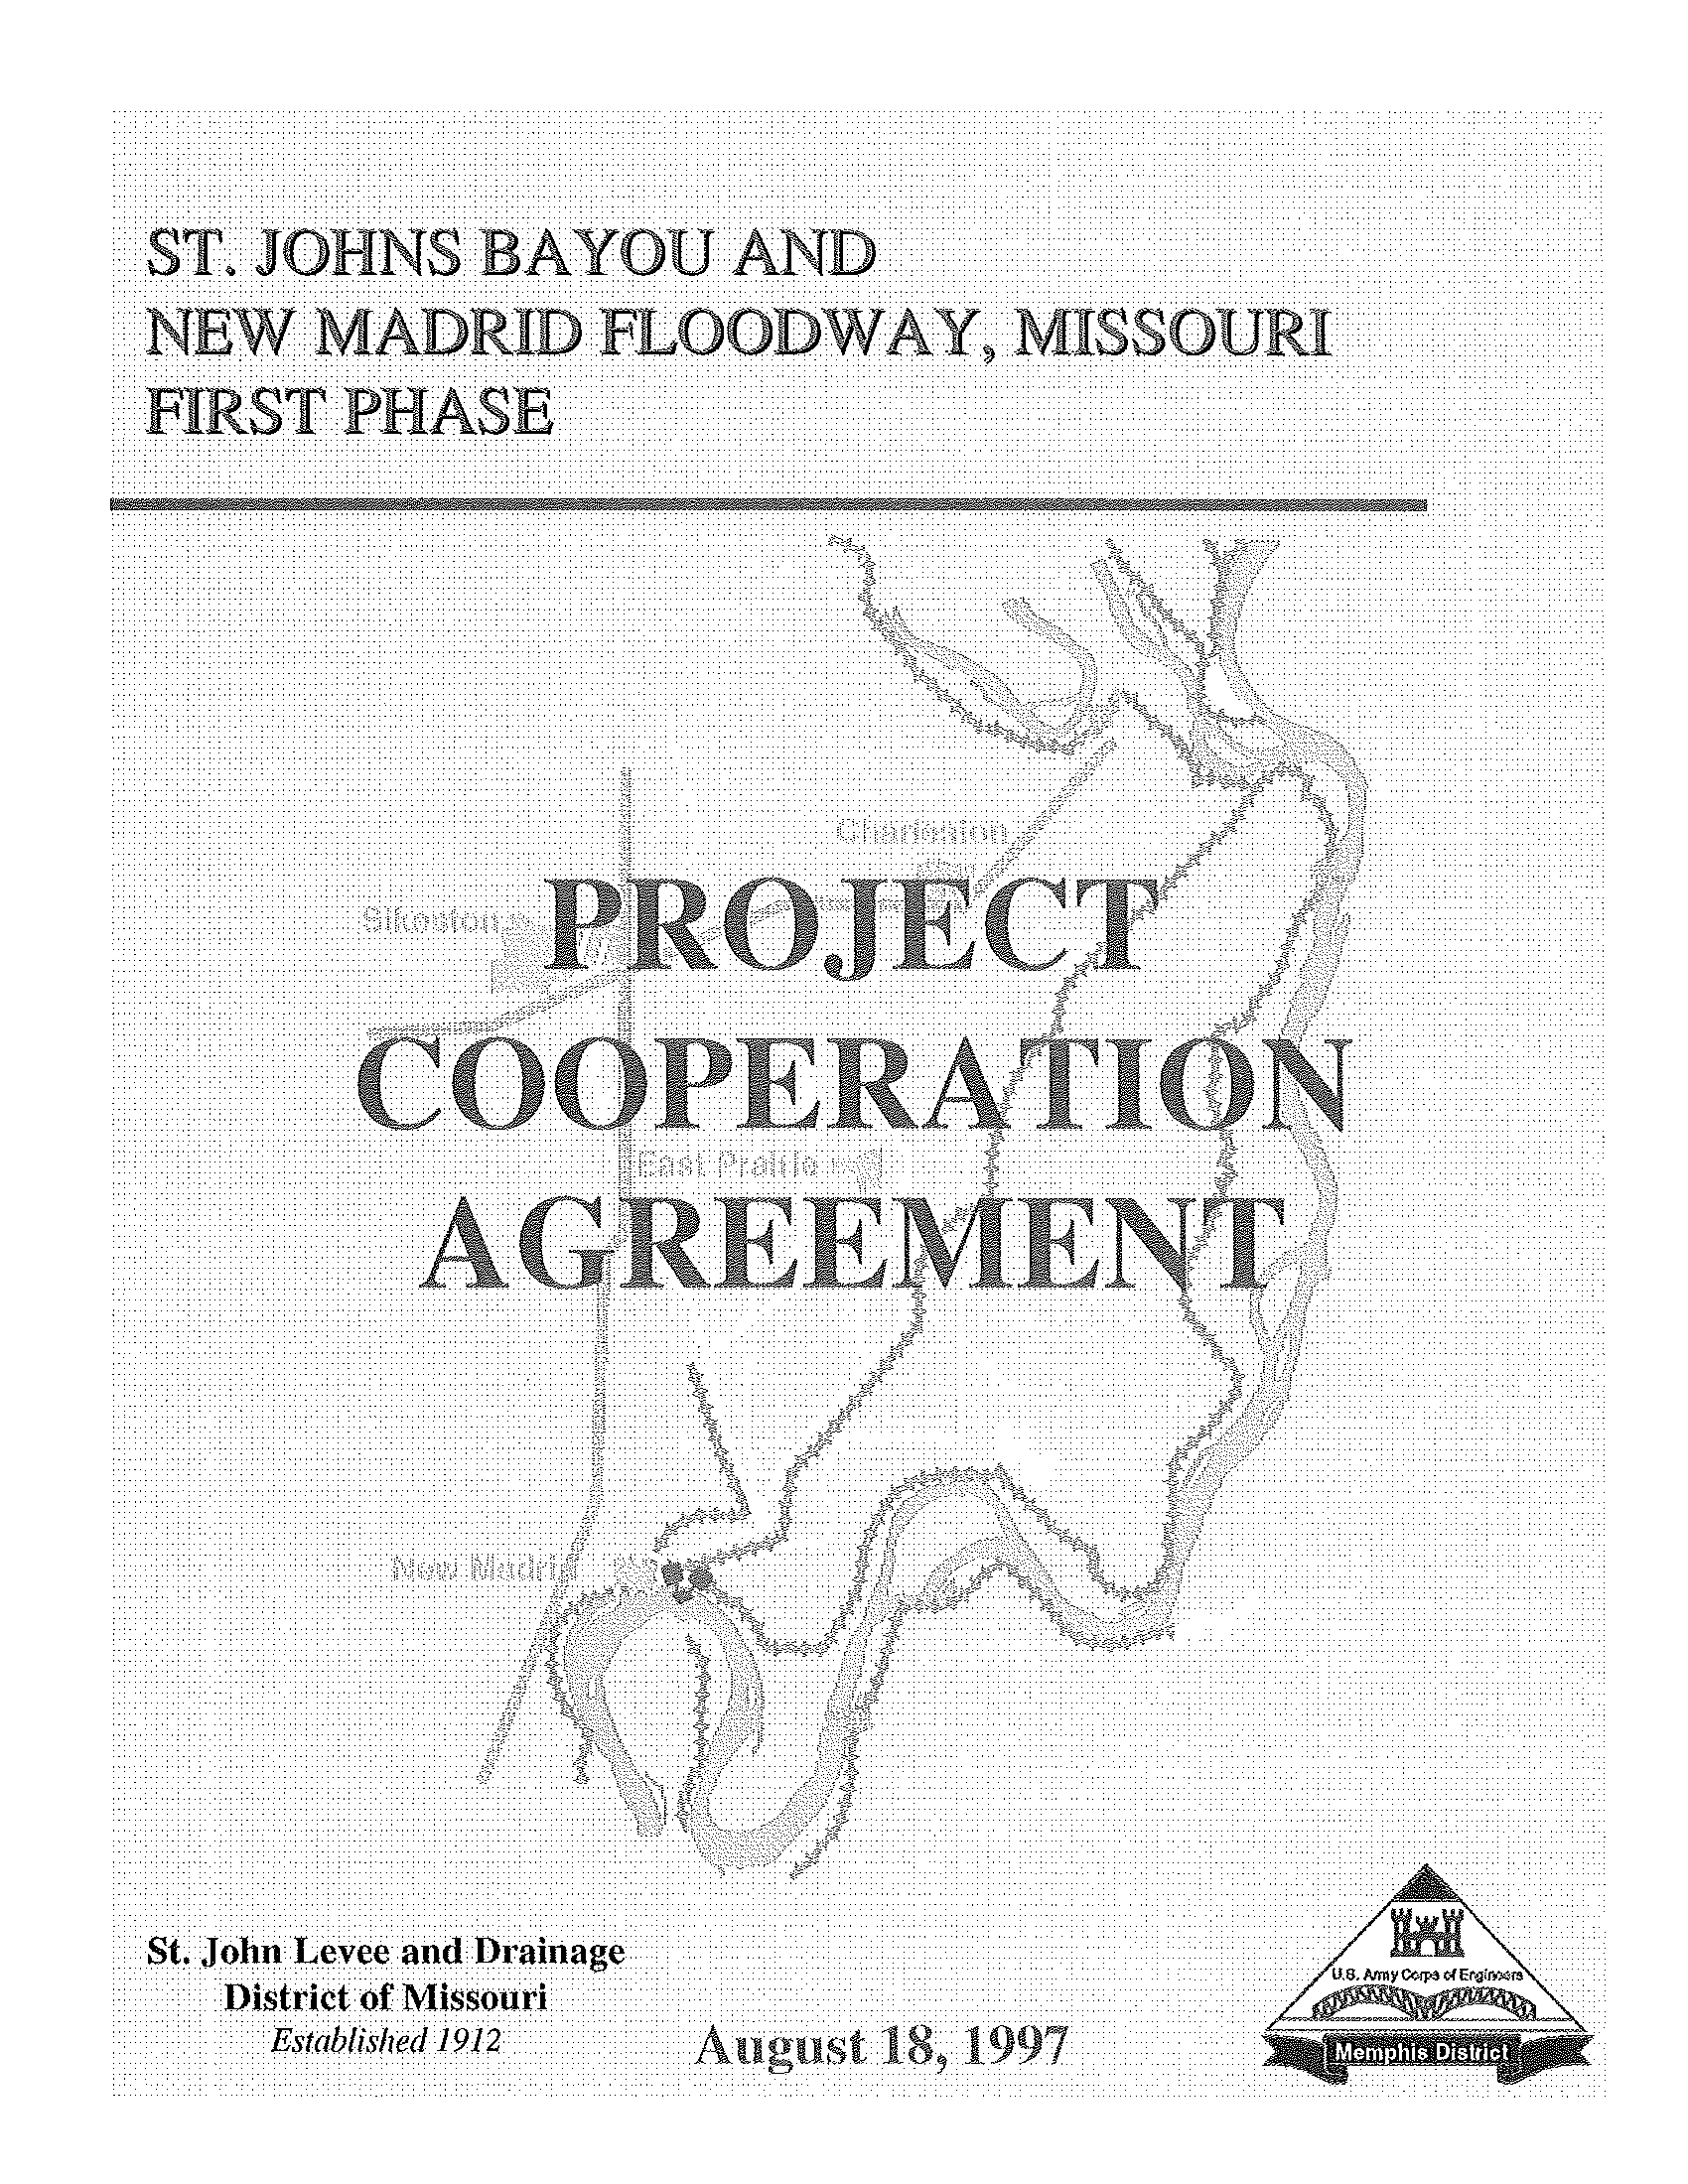 Project cooperation agreement between the Department of the Army and